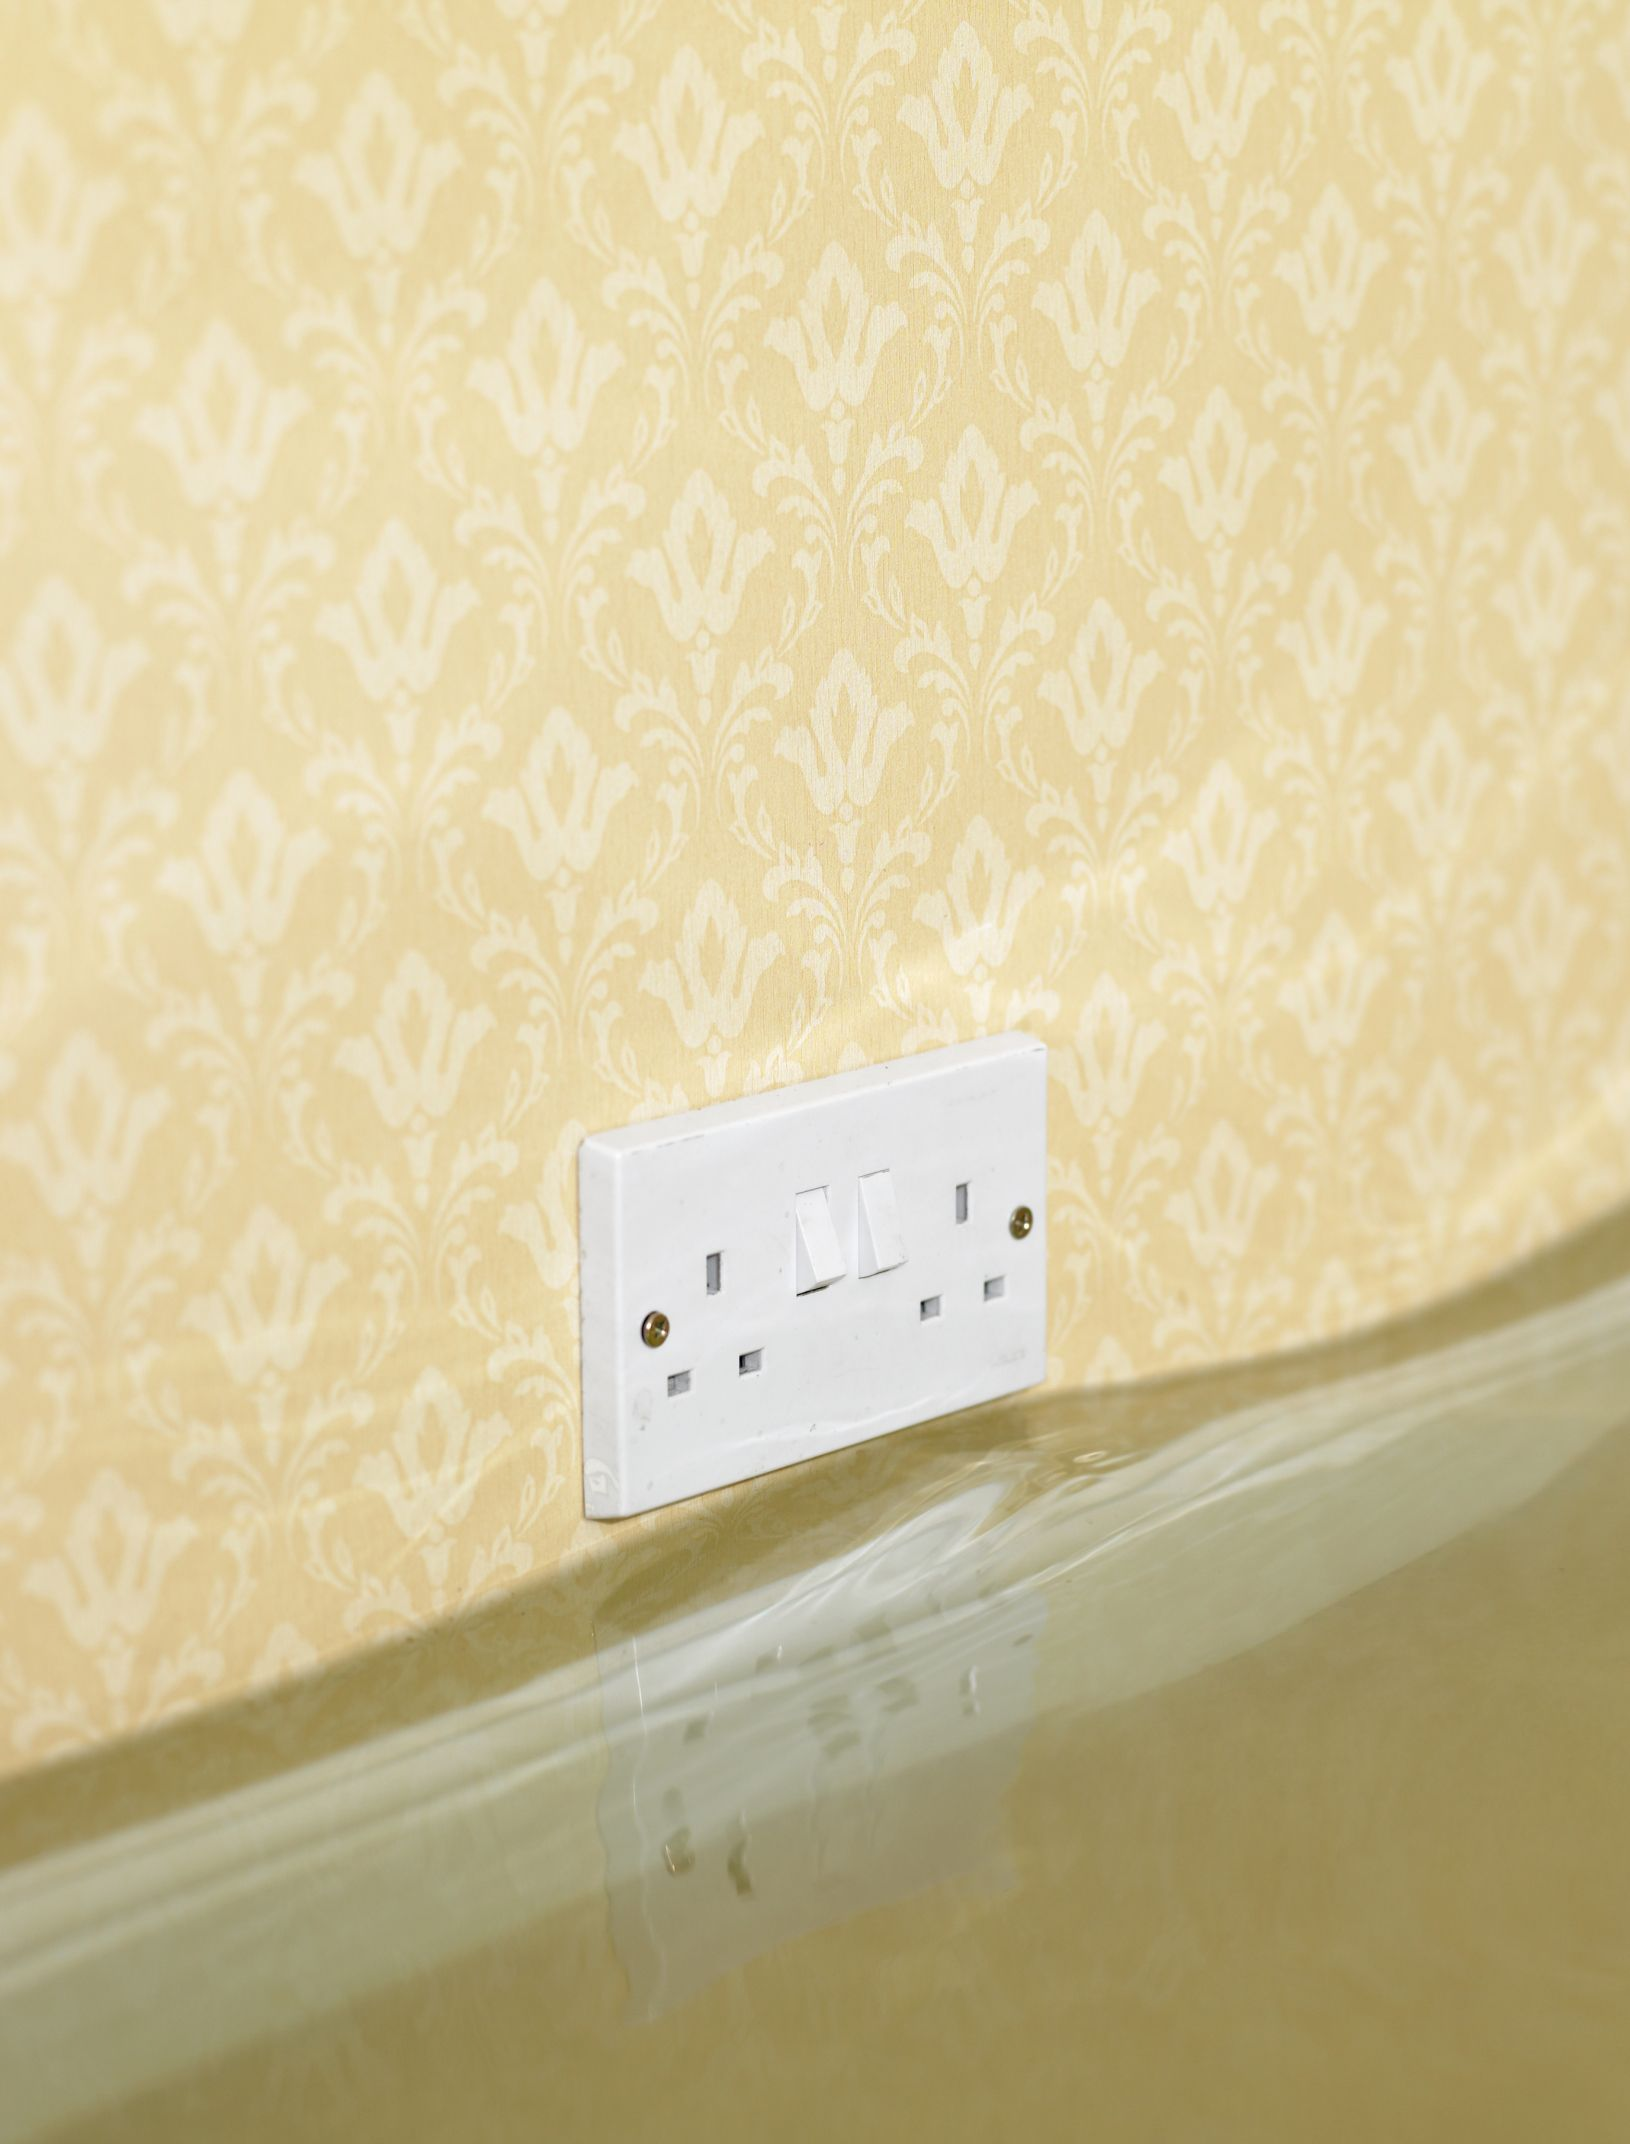 Repairing A Water Damaged Mdf Baseboard Hunker Water Damage Baseboards Wall Outlets